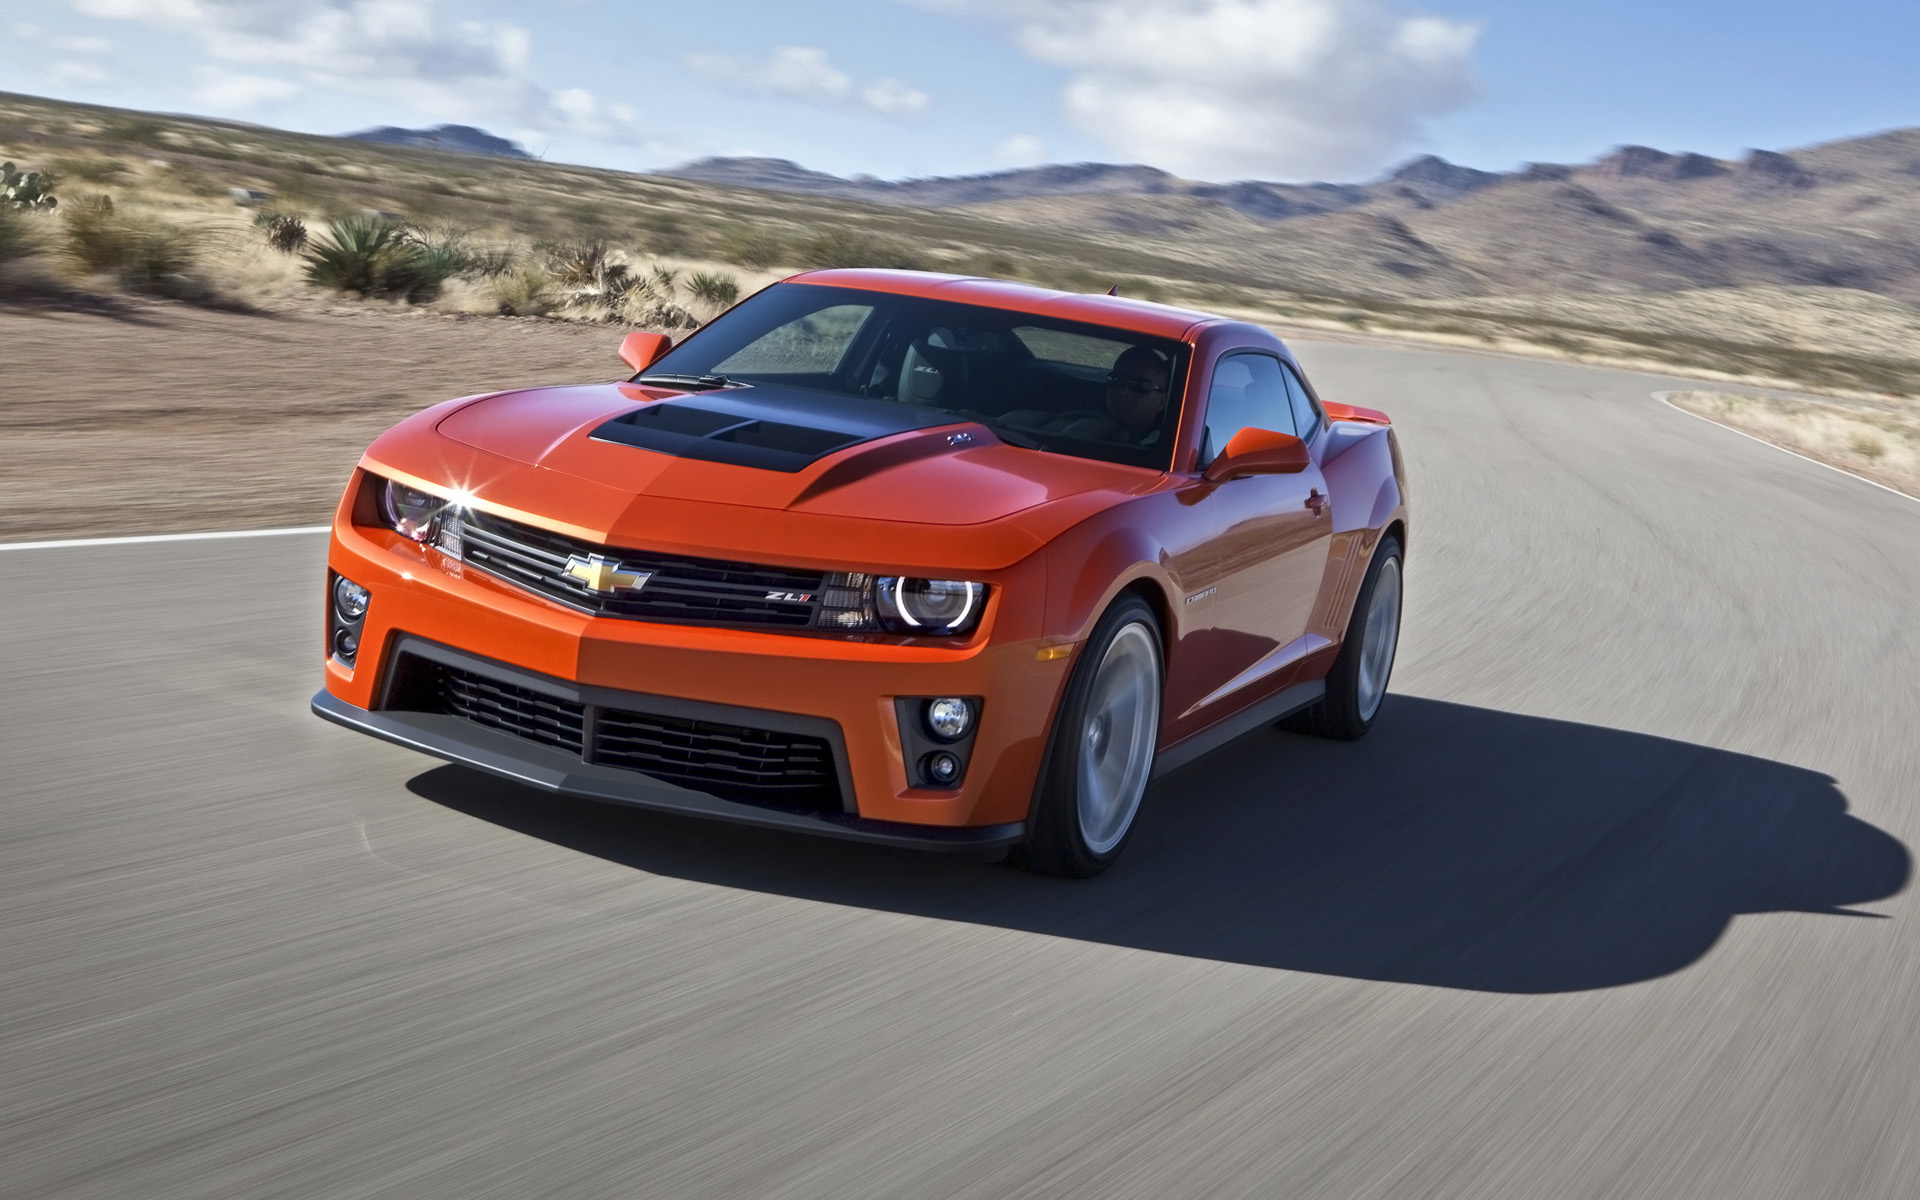 2014 Chevrolet Camaro ZL1 Coupe Wallpaper   iBackgroundWallpaper 1920x1200